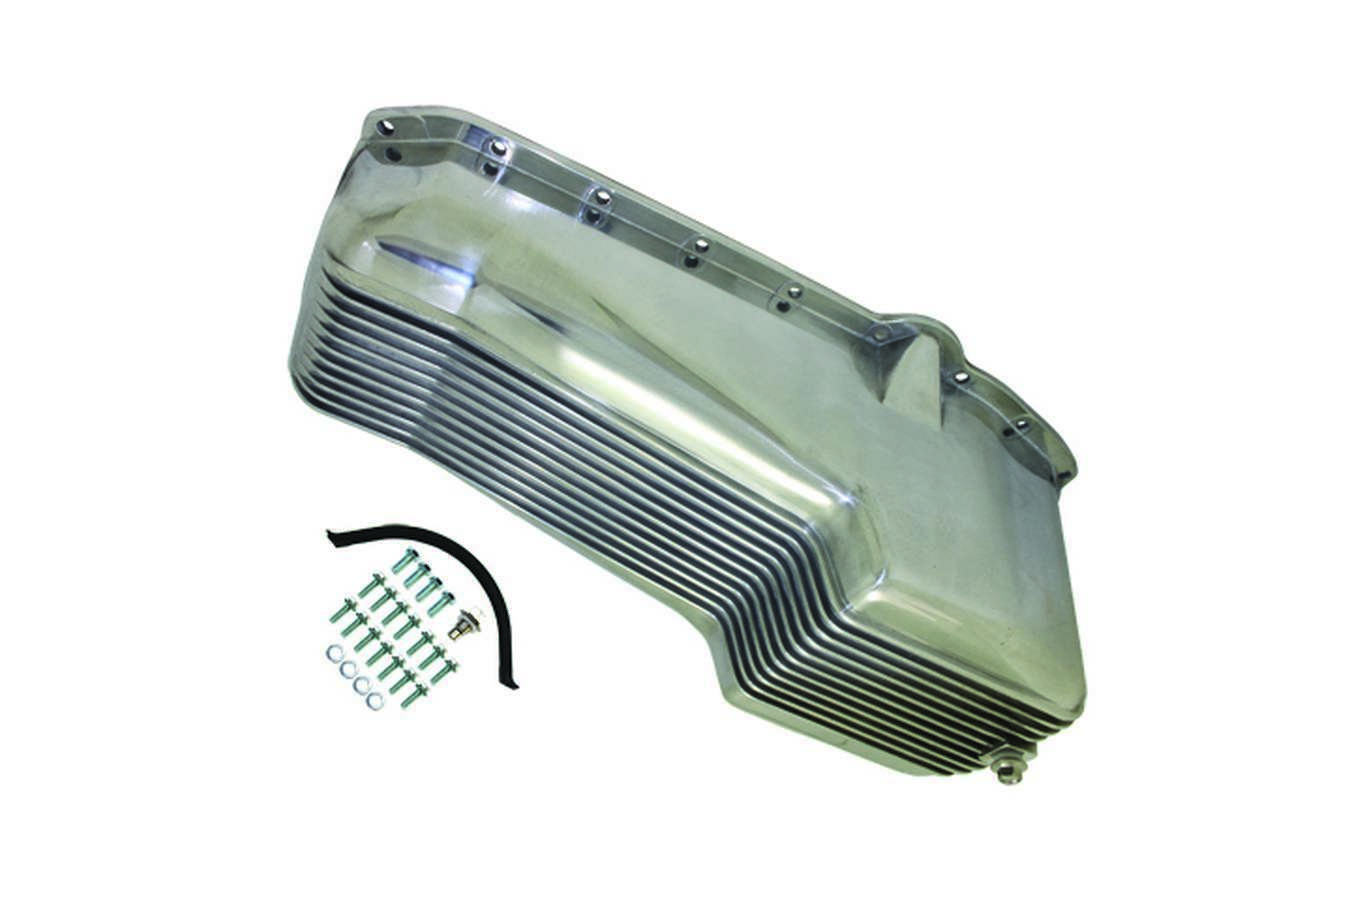 Specialty Products 8442 Engine Oil Pan, Rear Sump, Stock Capacity, Stock Depth, Finned, Aluminum, Polished, Small Block Chevy, Each